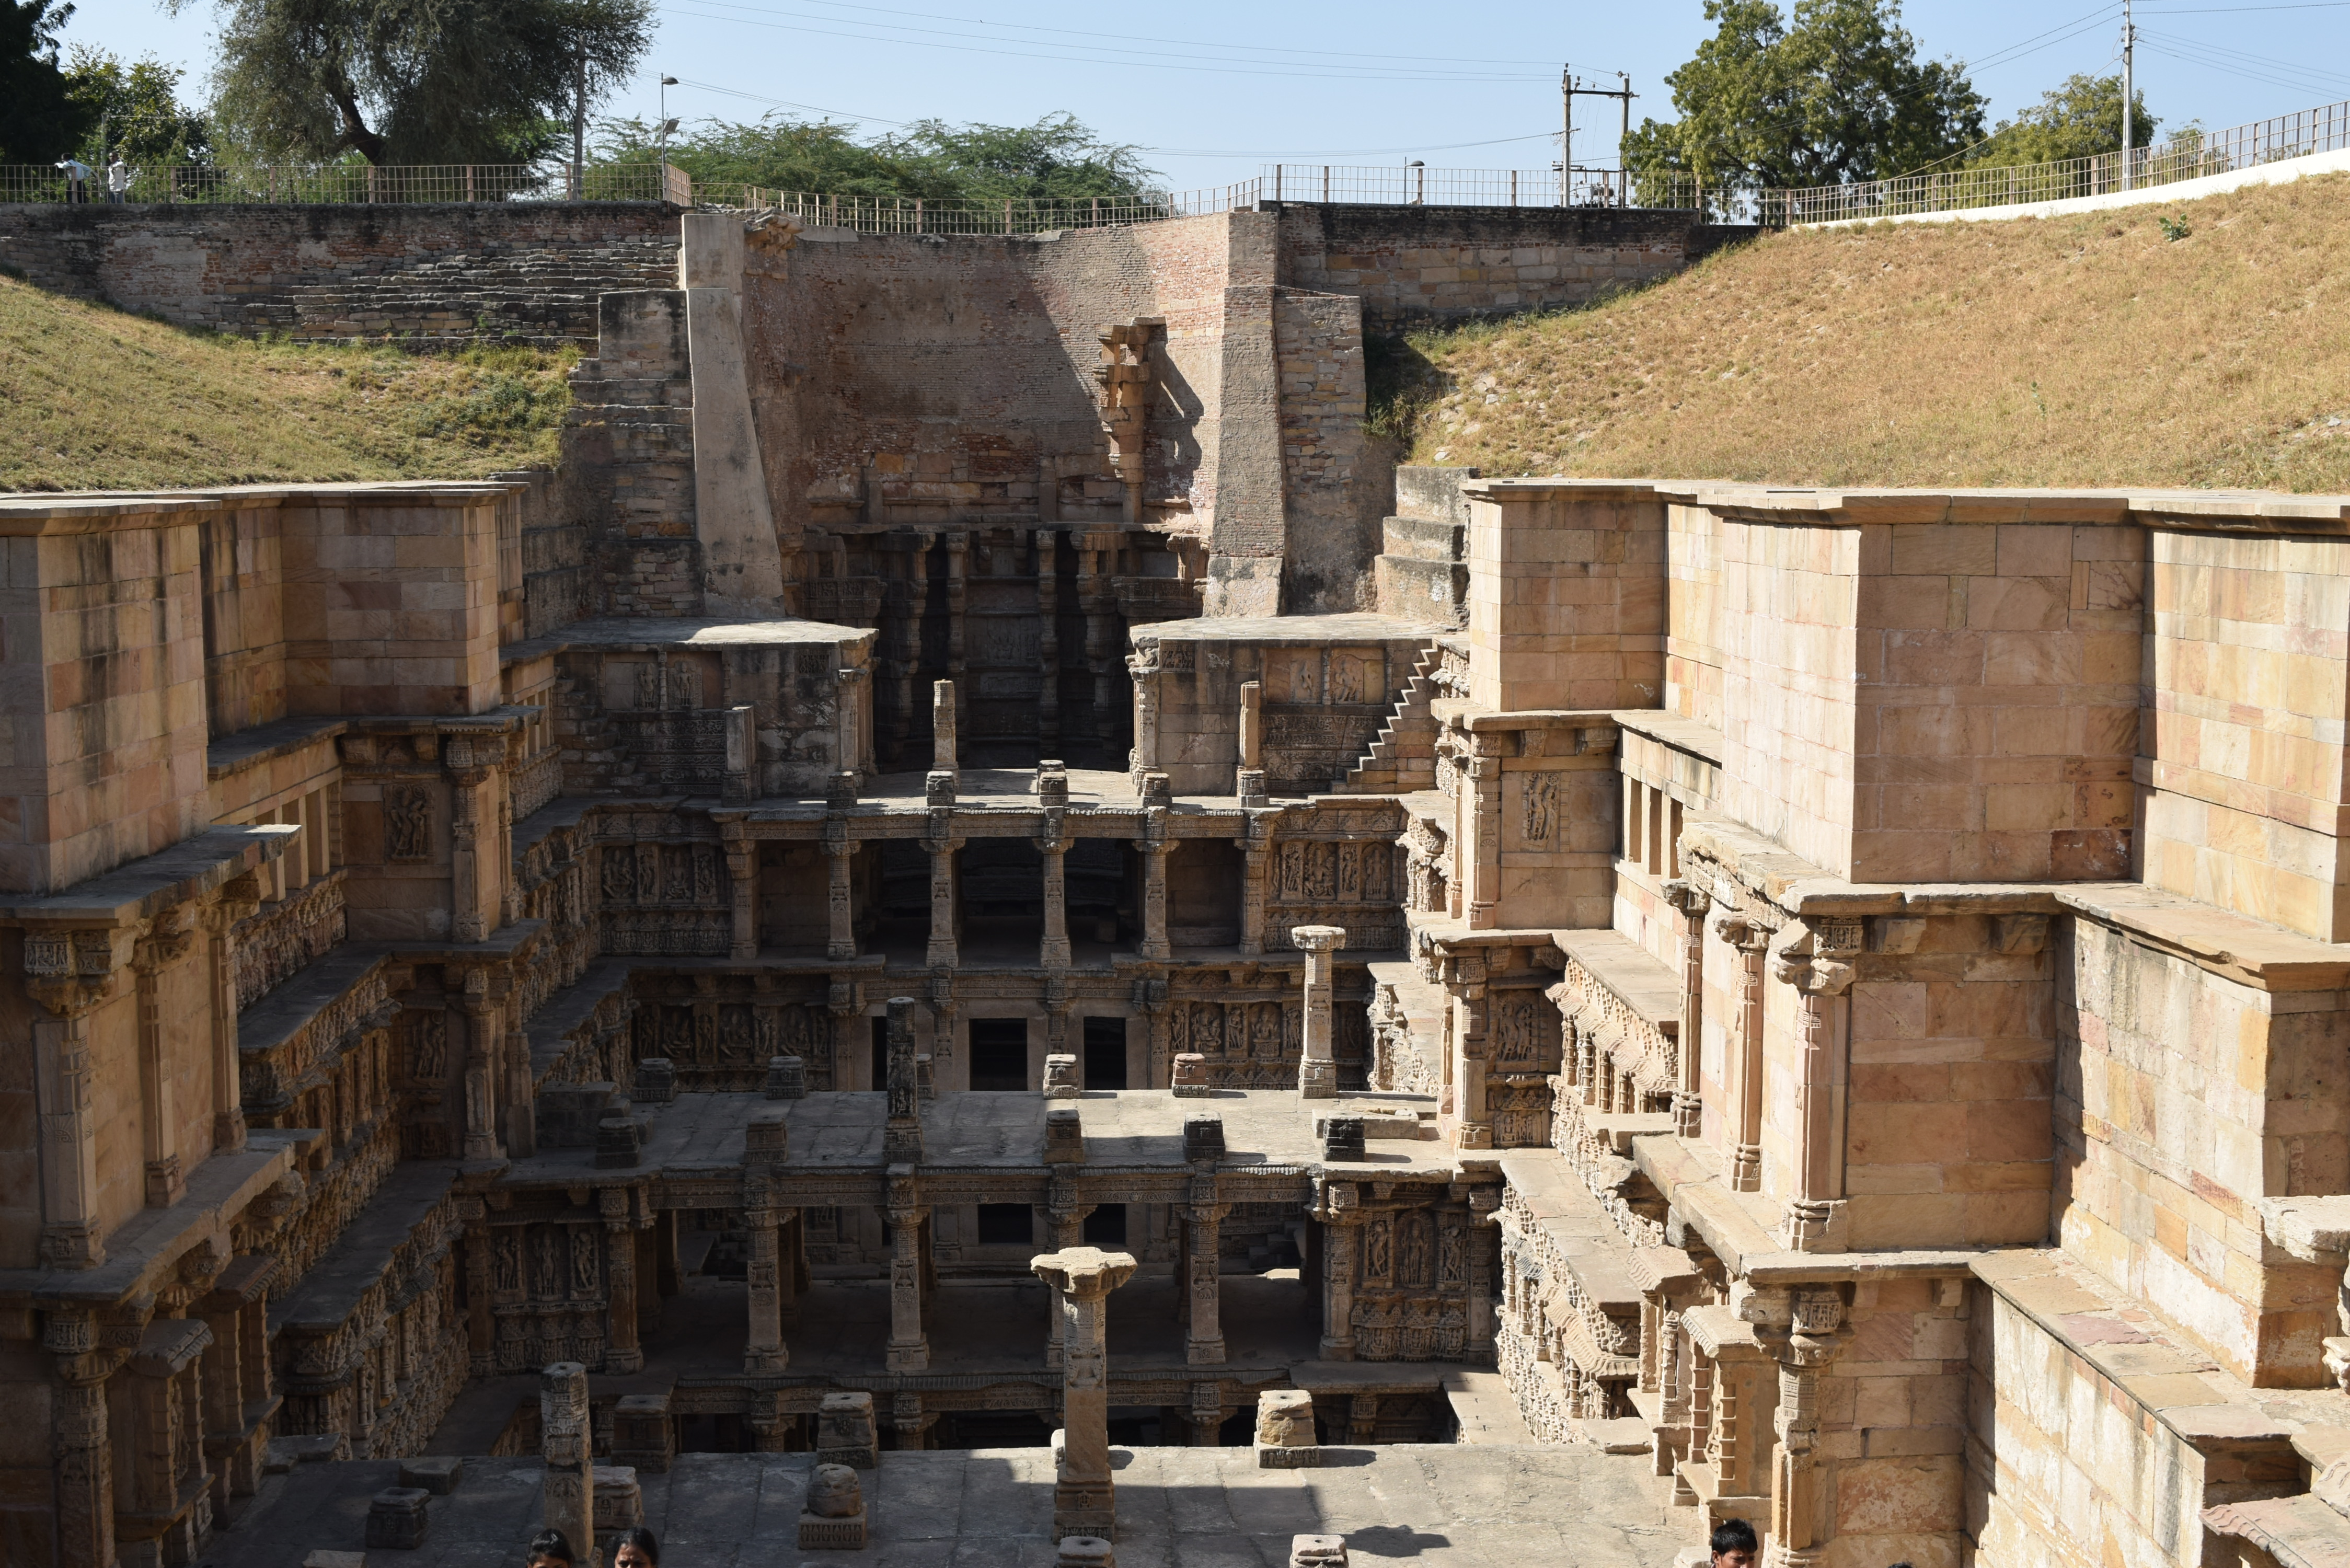 The seven tiers of Rani ki vav step well